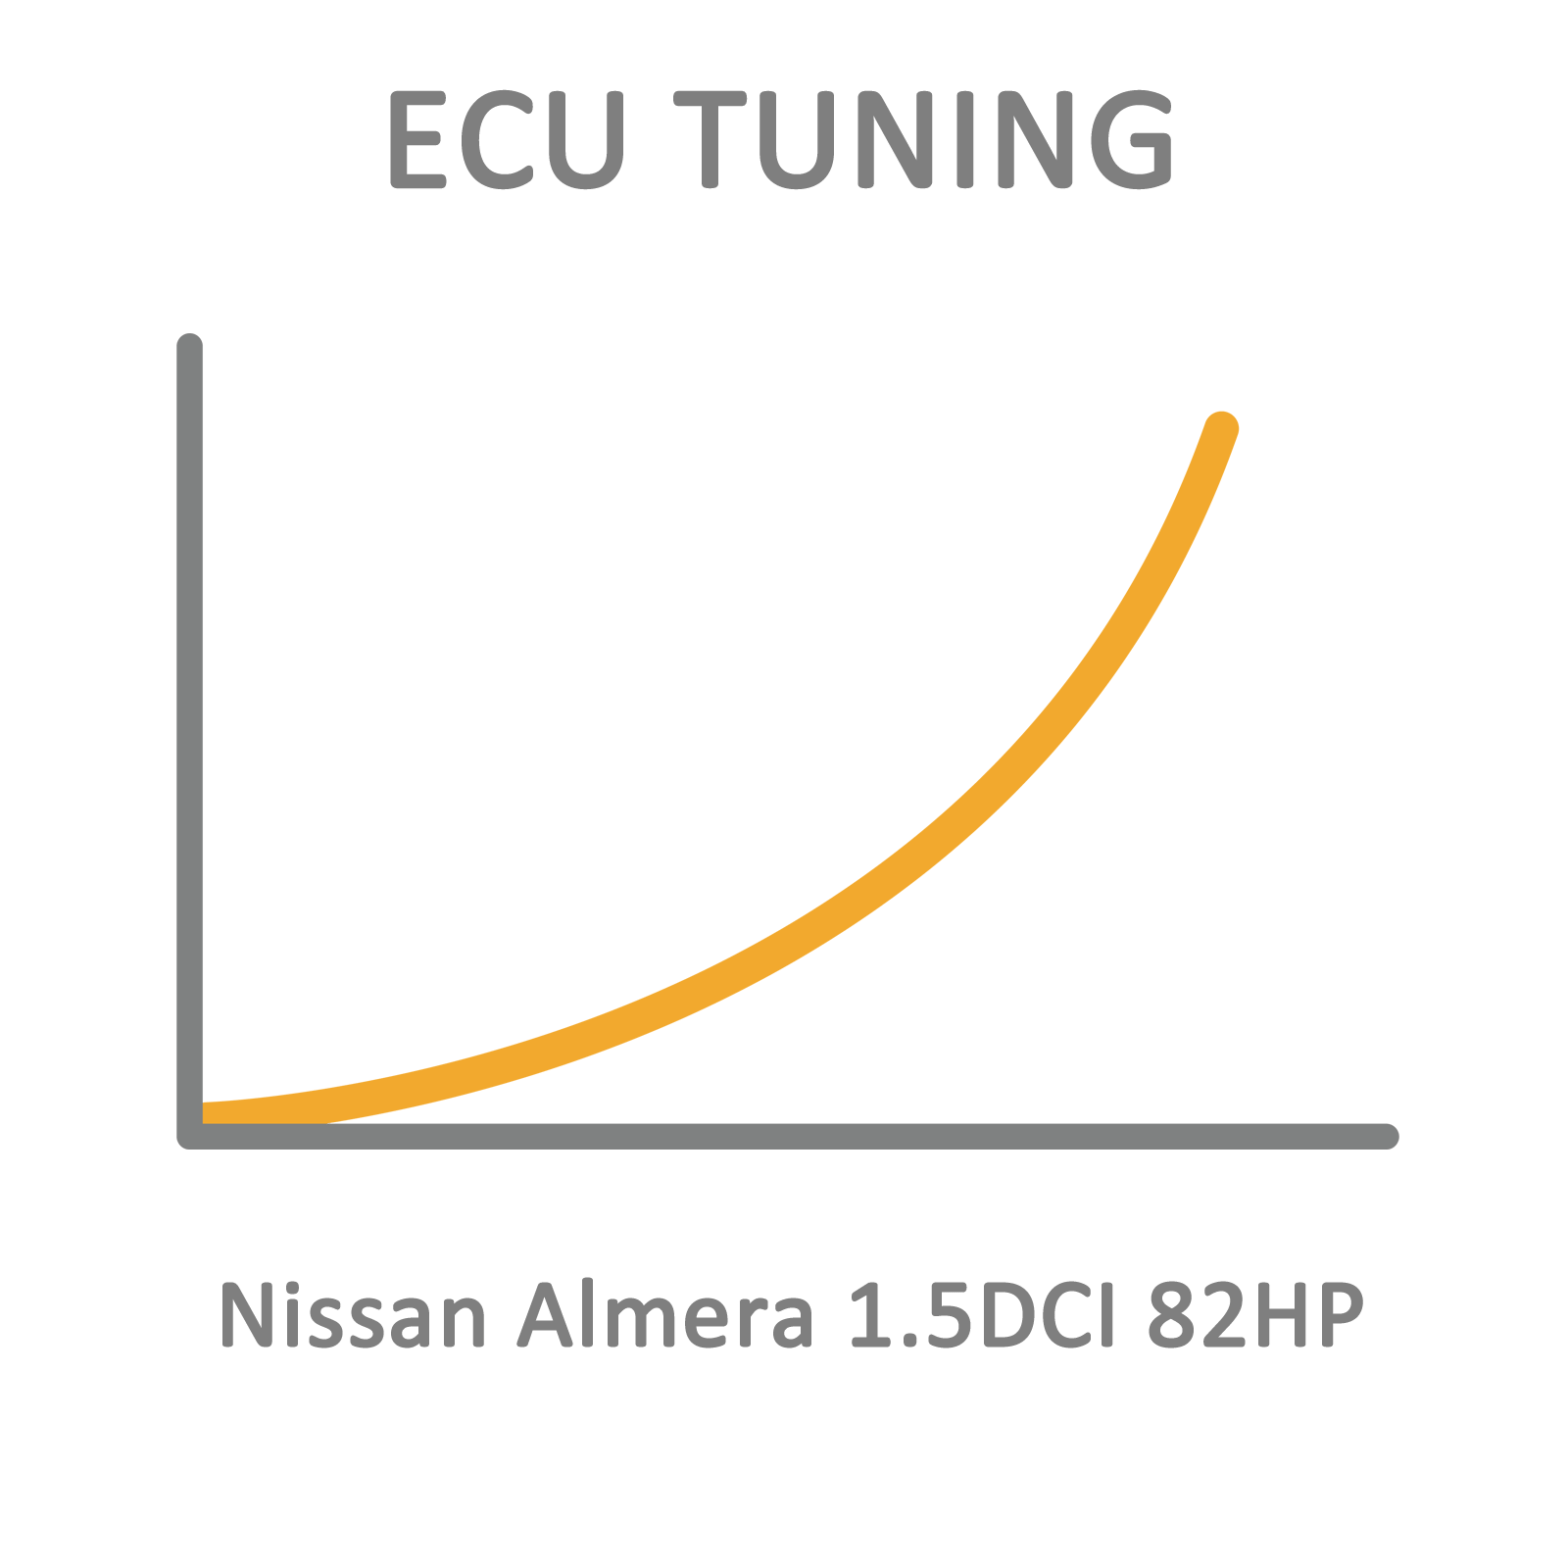 Nissan Almera 1.5DCI 82HP ECU Tuning Remapping Programming